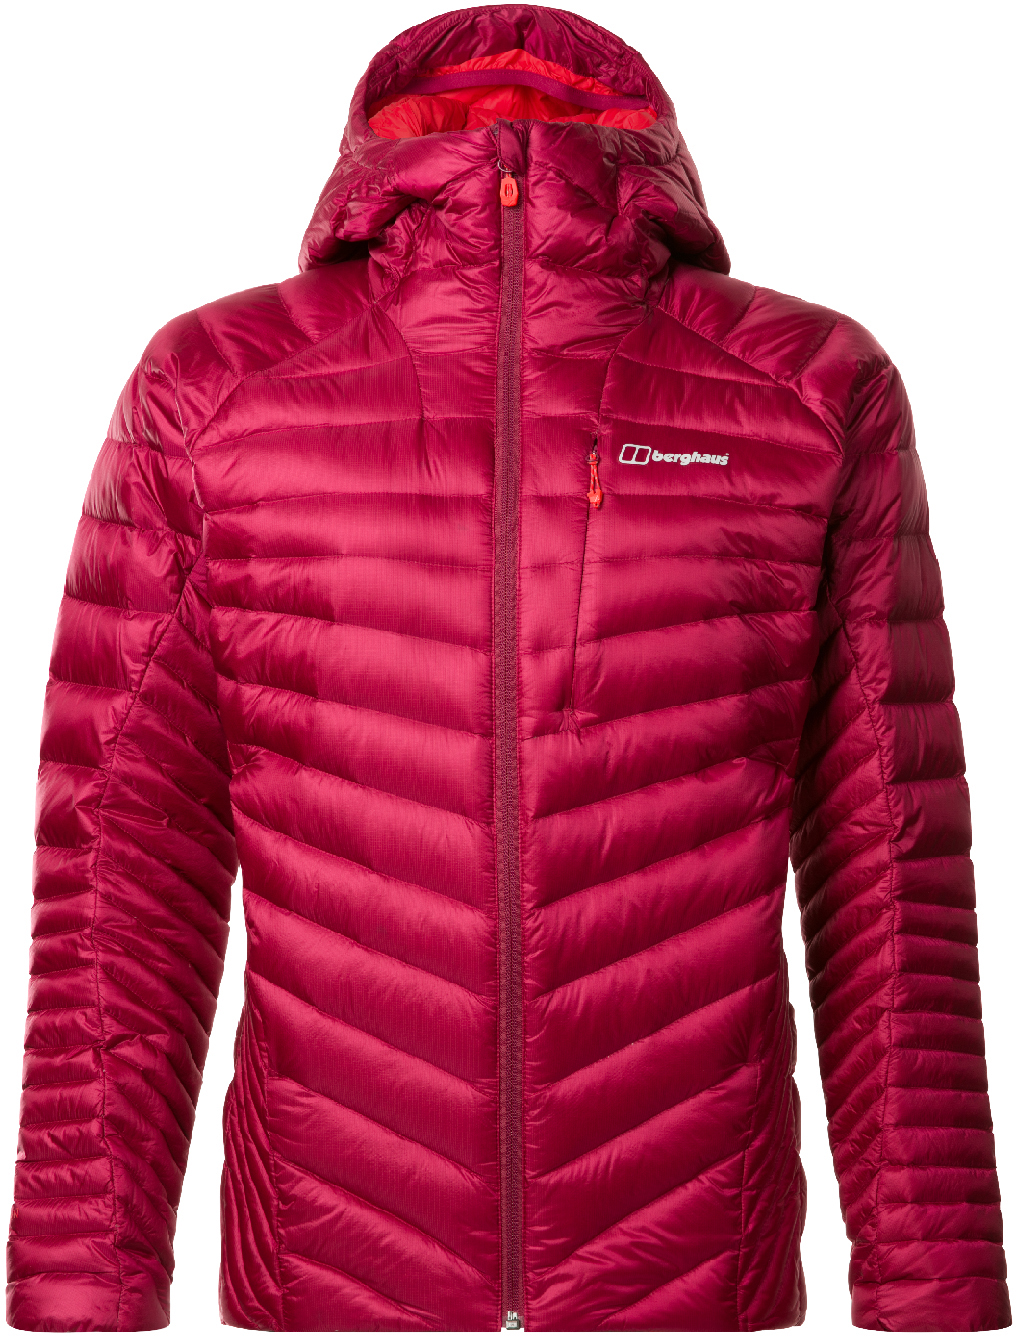 Berghaus Women's Extrem Micro Down Jacket 2.0 | Jackets